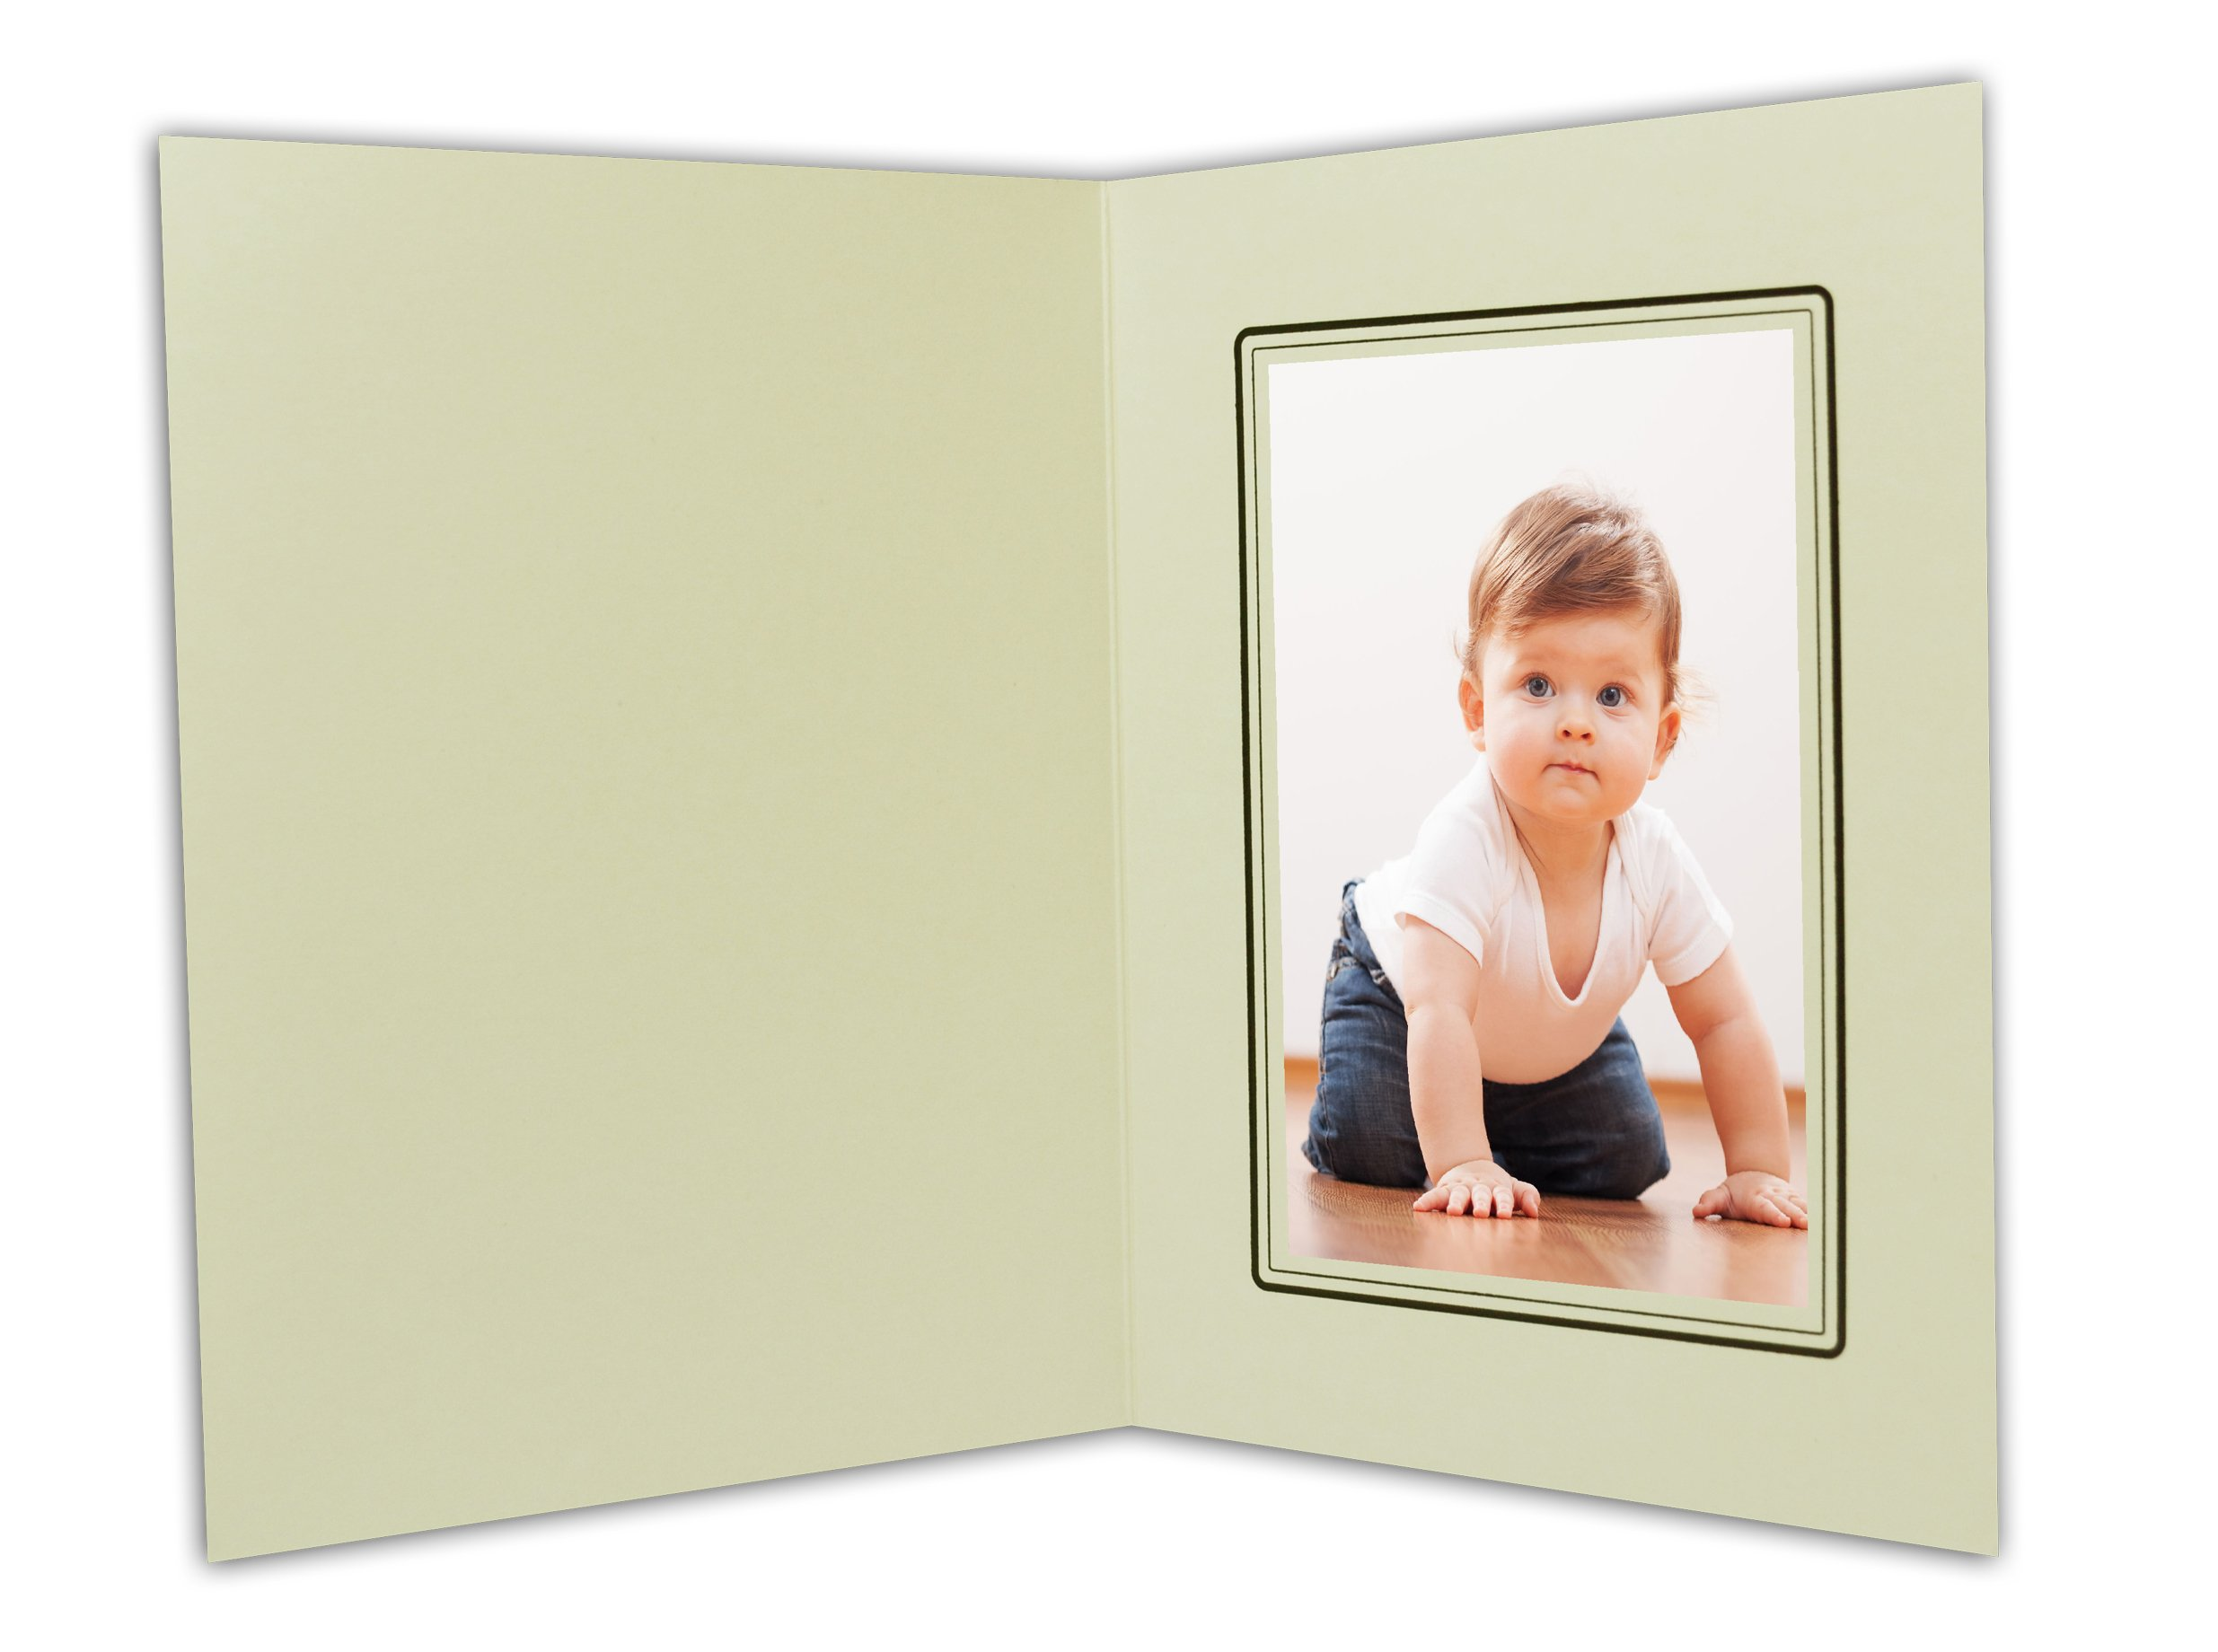 Golden State Art, Cardboard Photo Folder For a 4x6 Photo (Pack of 100) GS001-S Ivory Color by Golden State Art